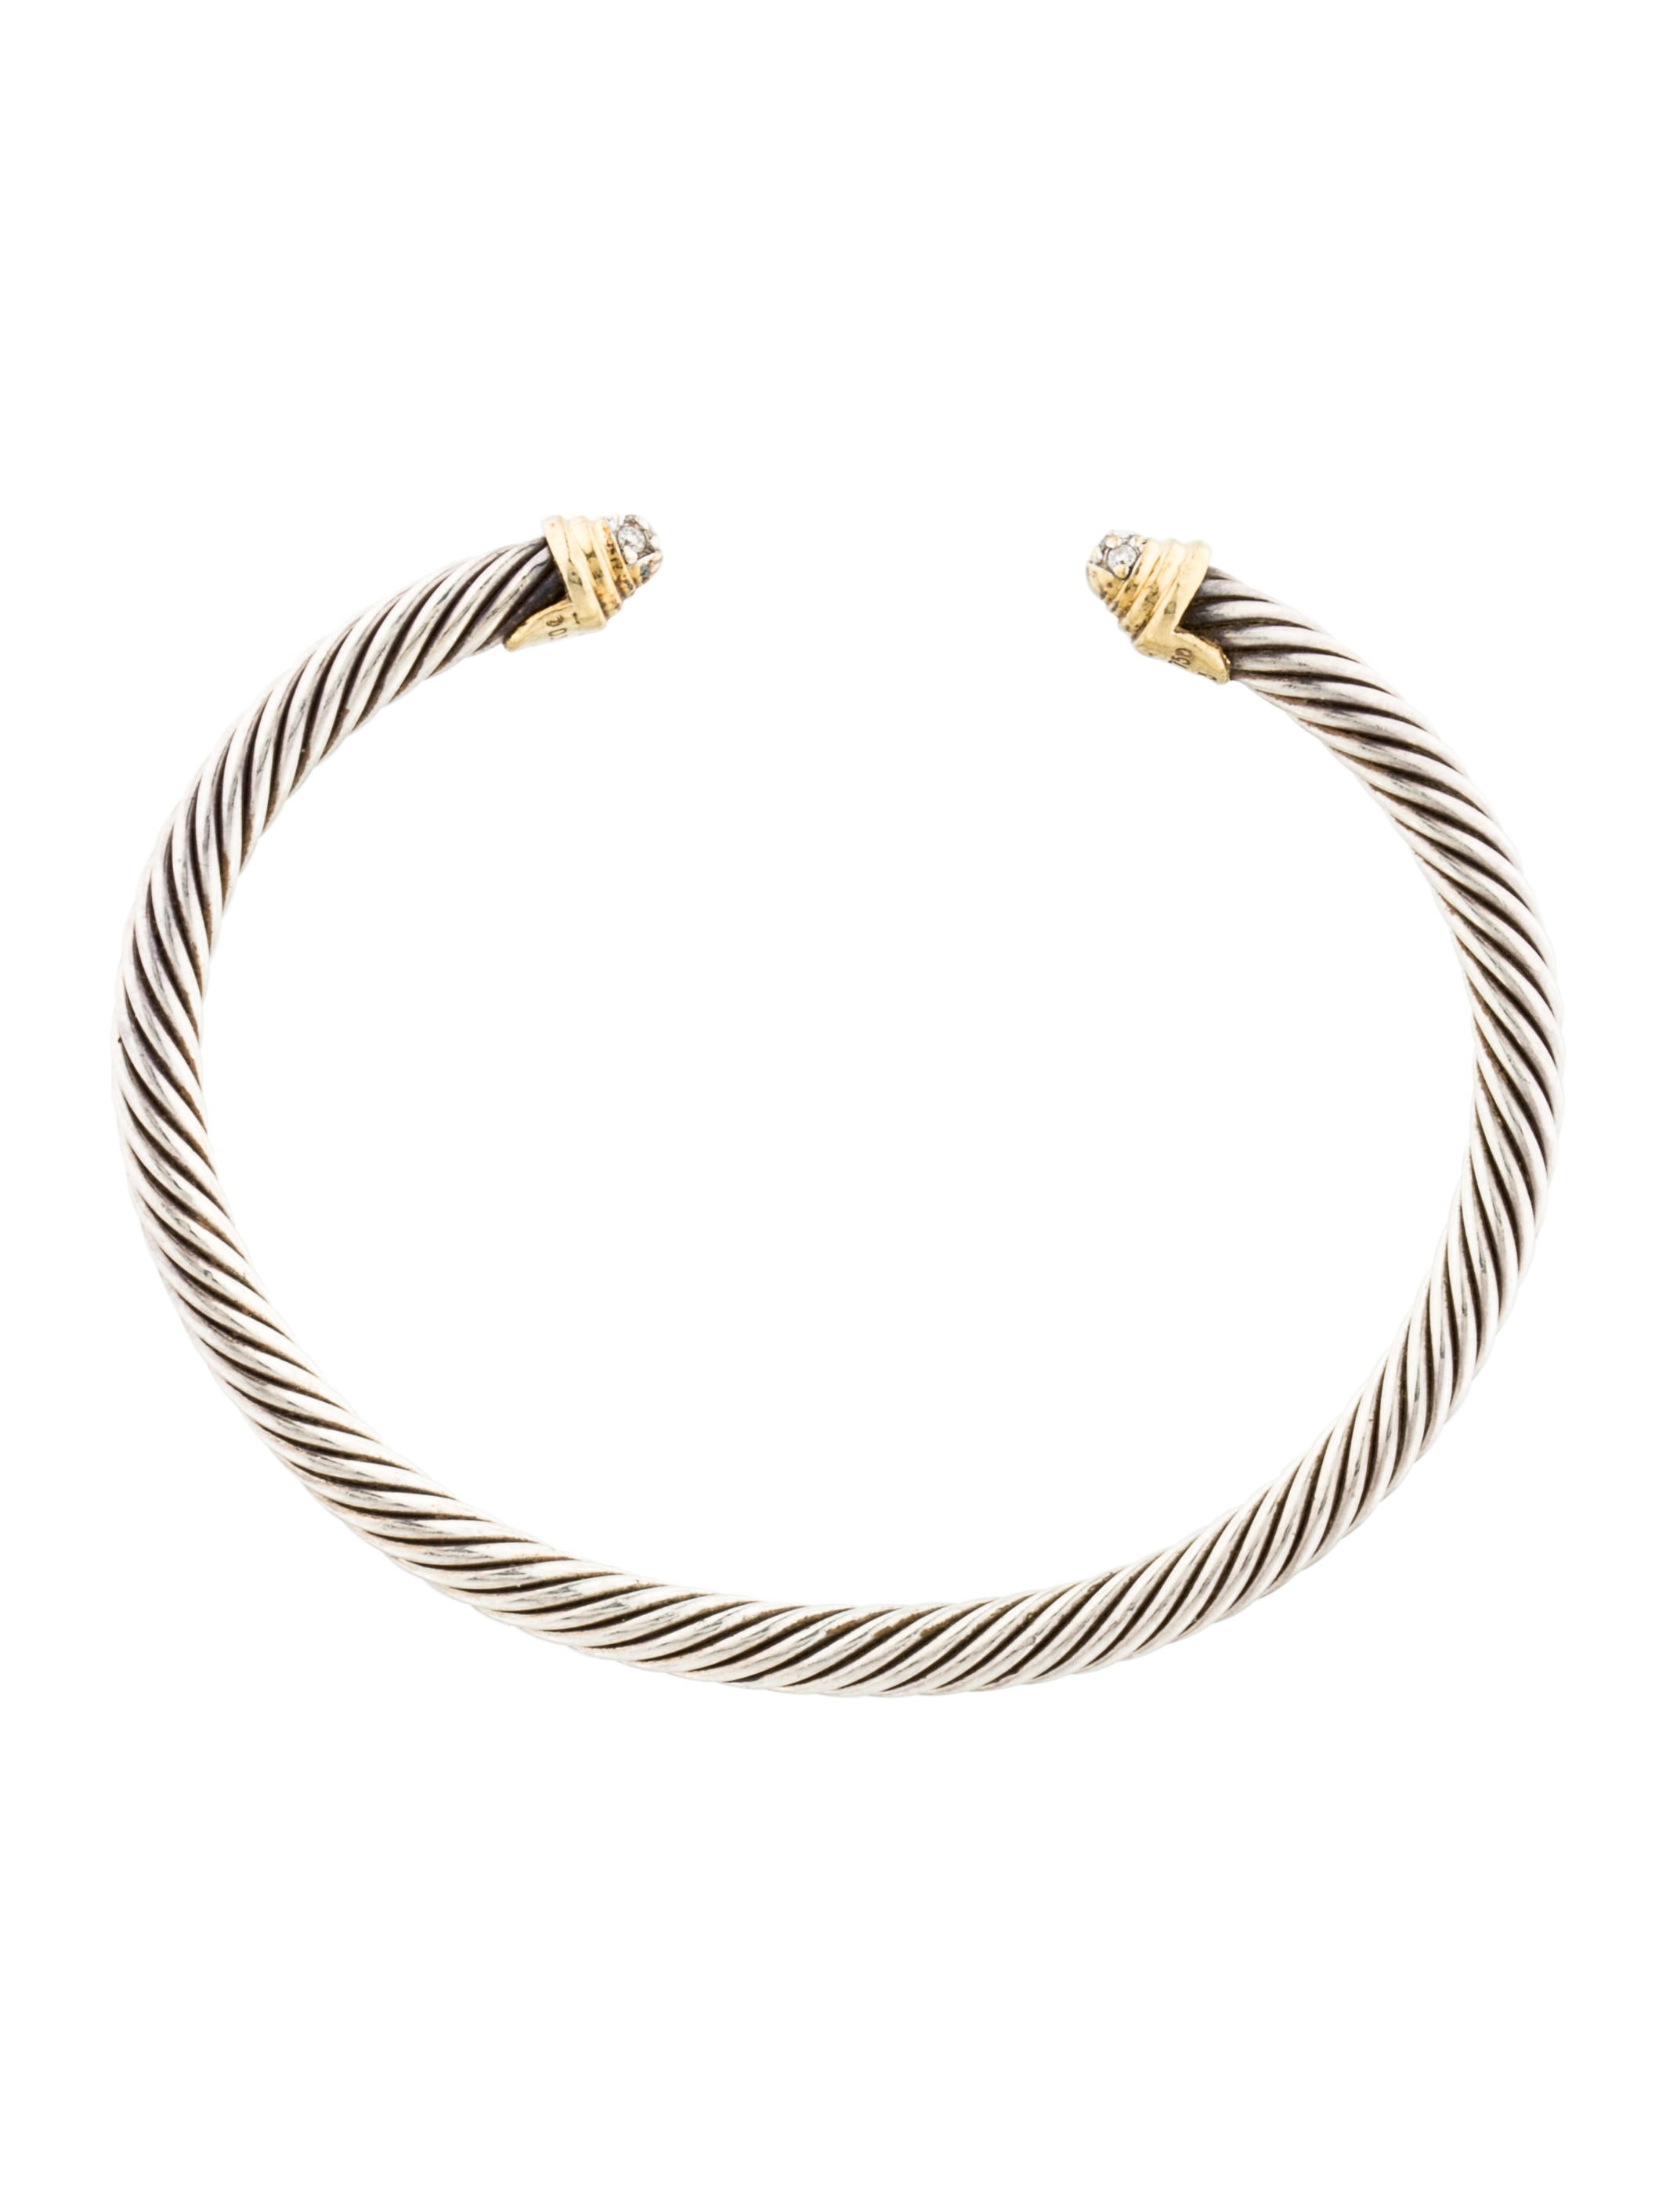 David yurman girls 39 two tone diamond cable bracelet for David yurman inspired bracelet cable